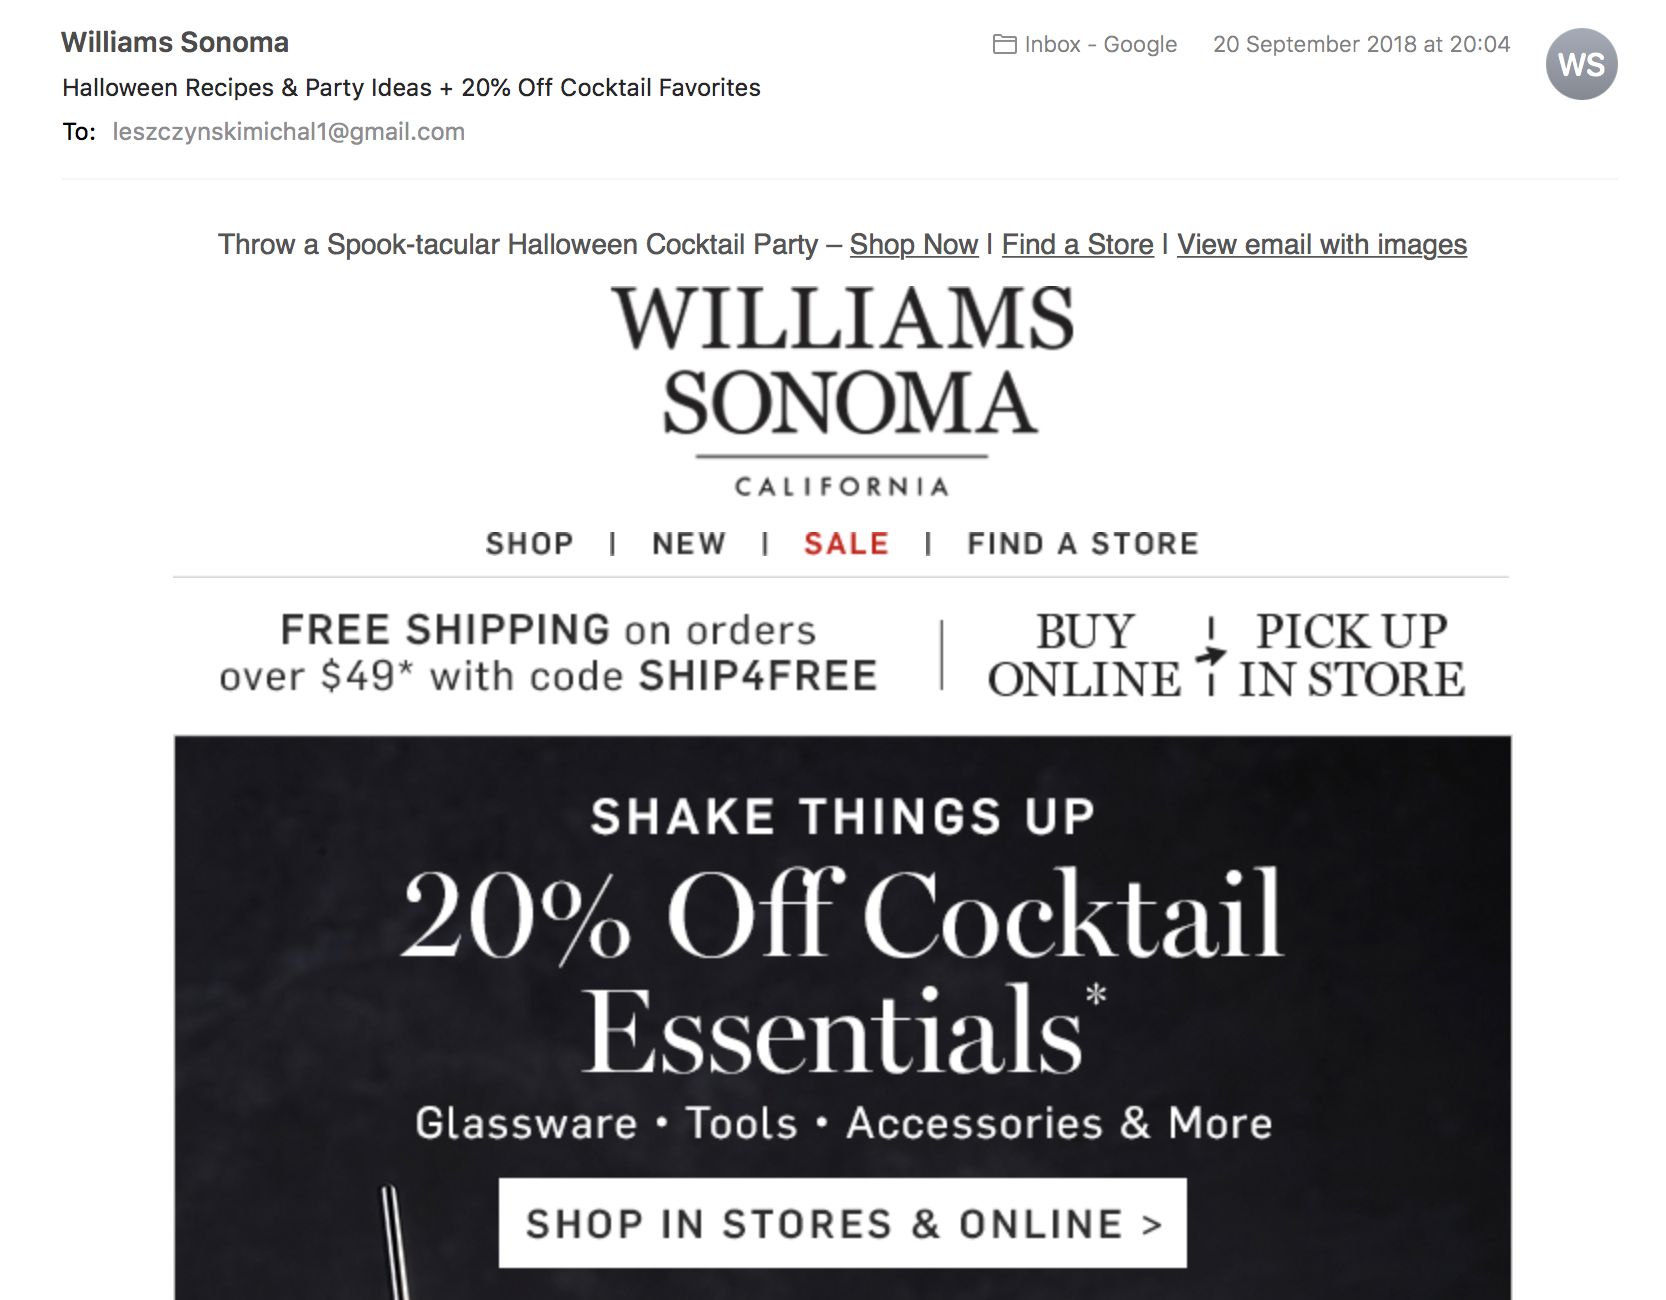 Halloween newsletter preheader in Williams Sonoma campaign